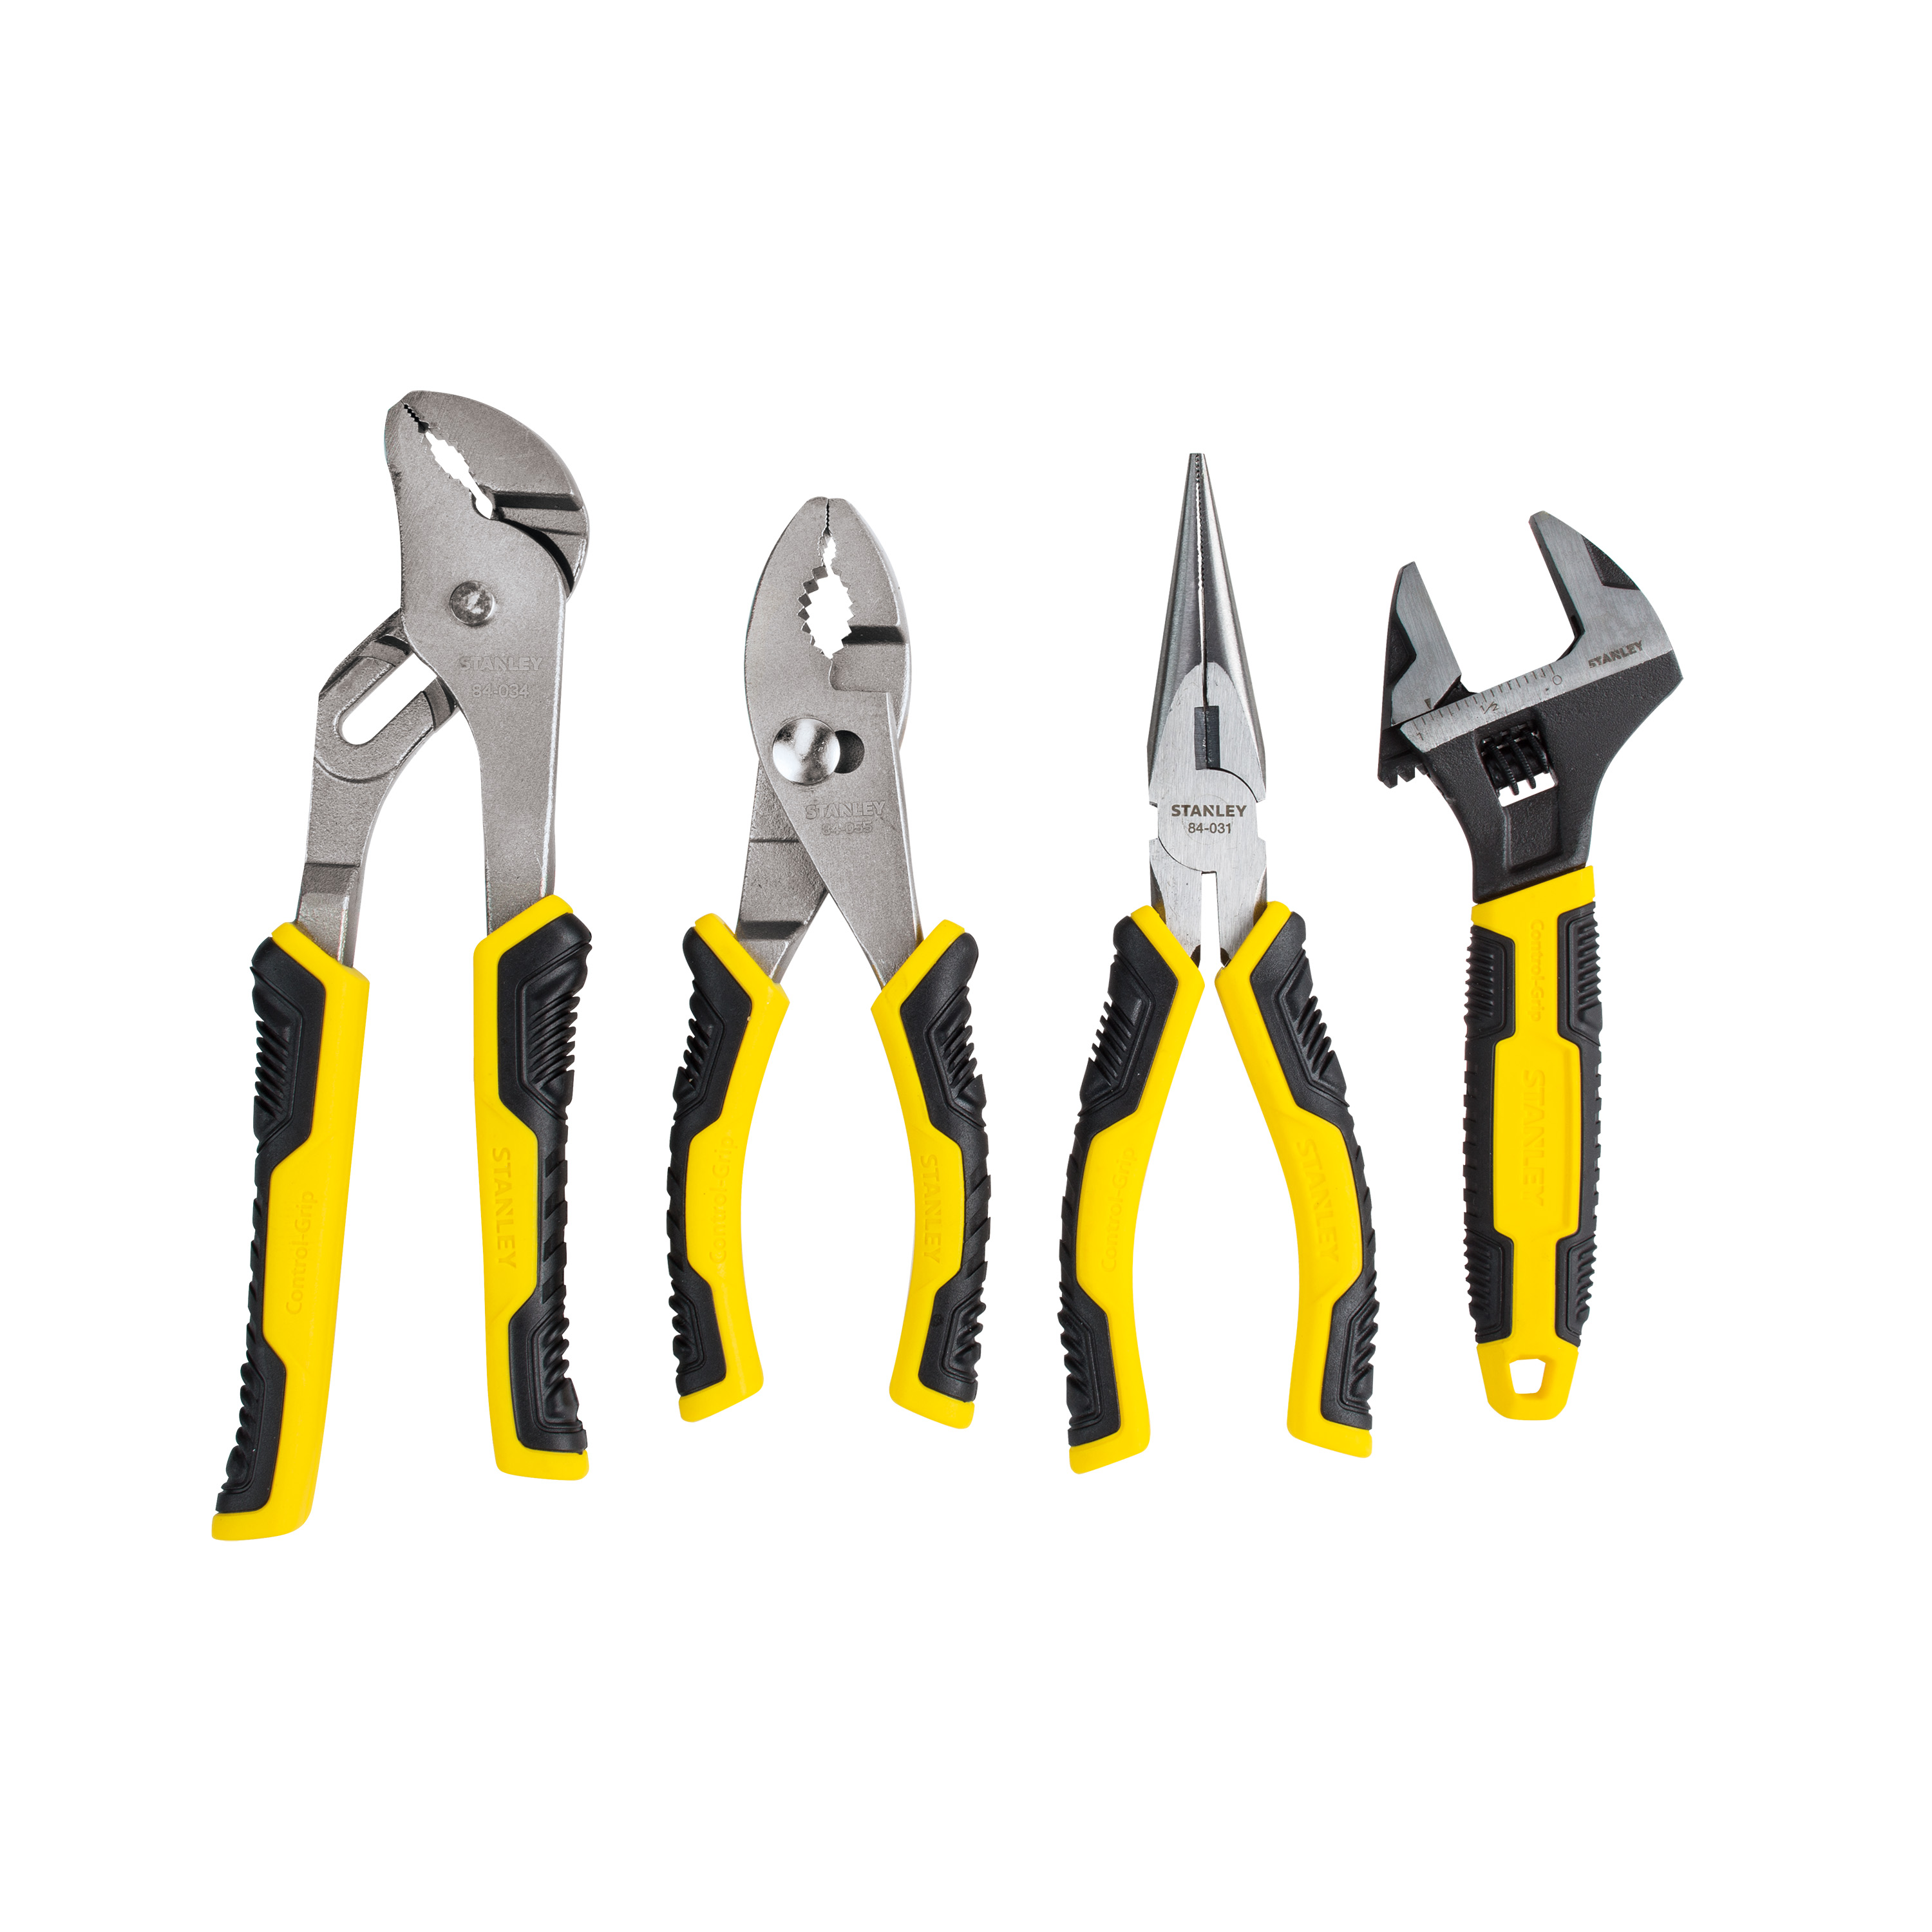 STANLEY 84-558 4-Piece Plier and Adjustable Wrench Set by Stanley Black & Decker